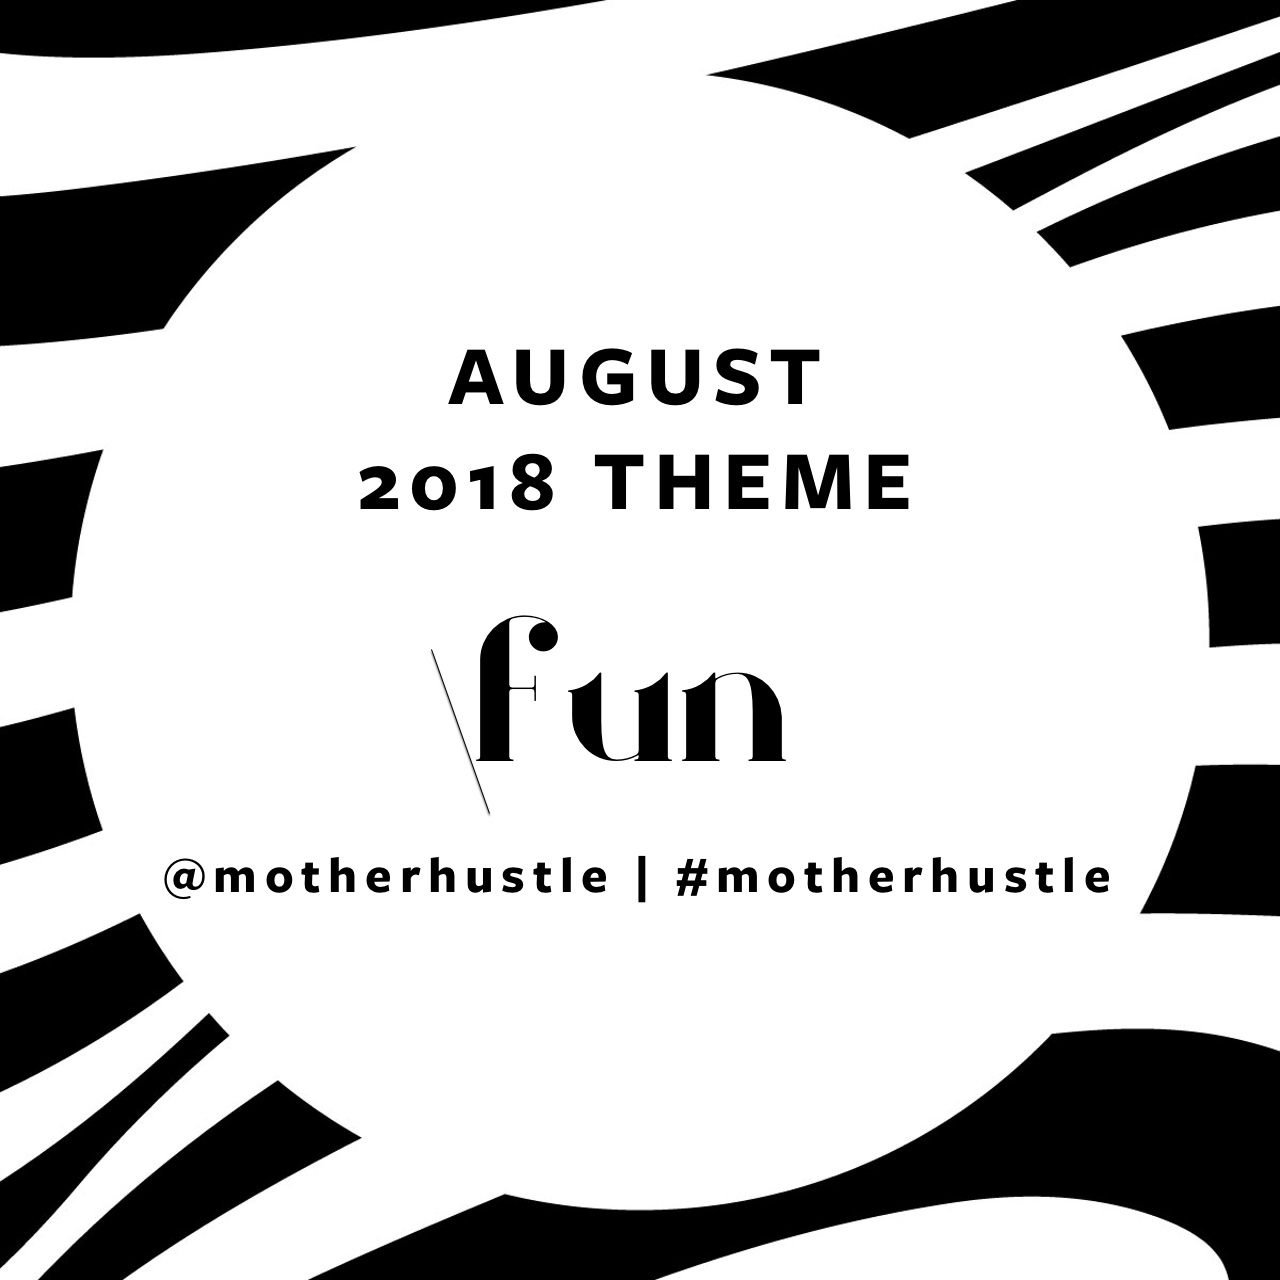 MotherHustle Theme August 2018 - Fun